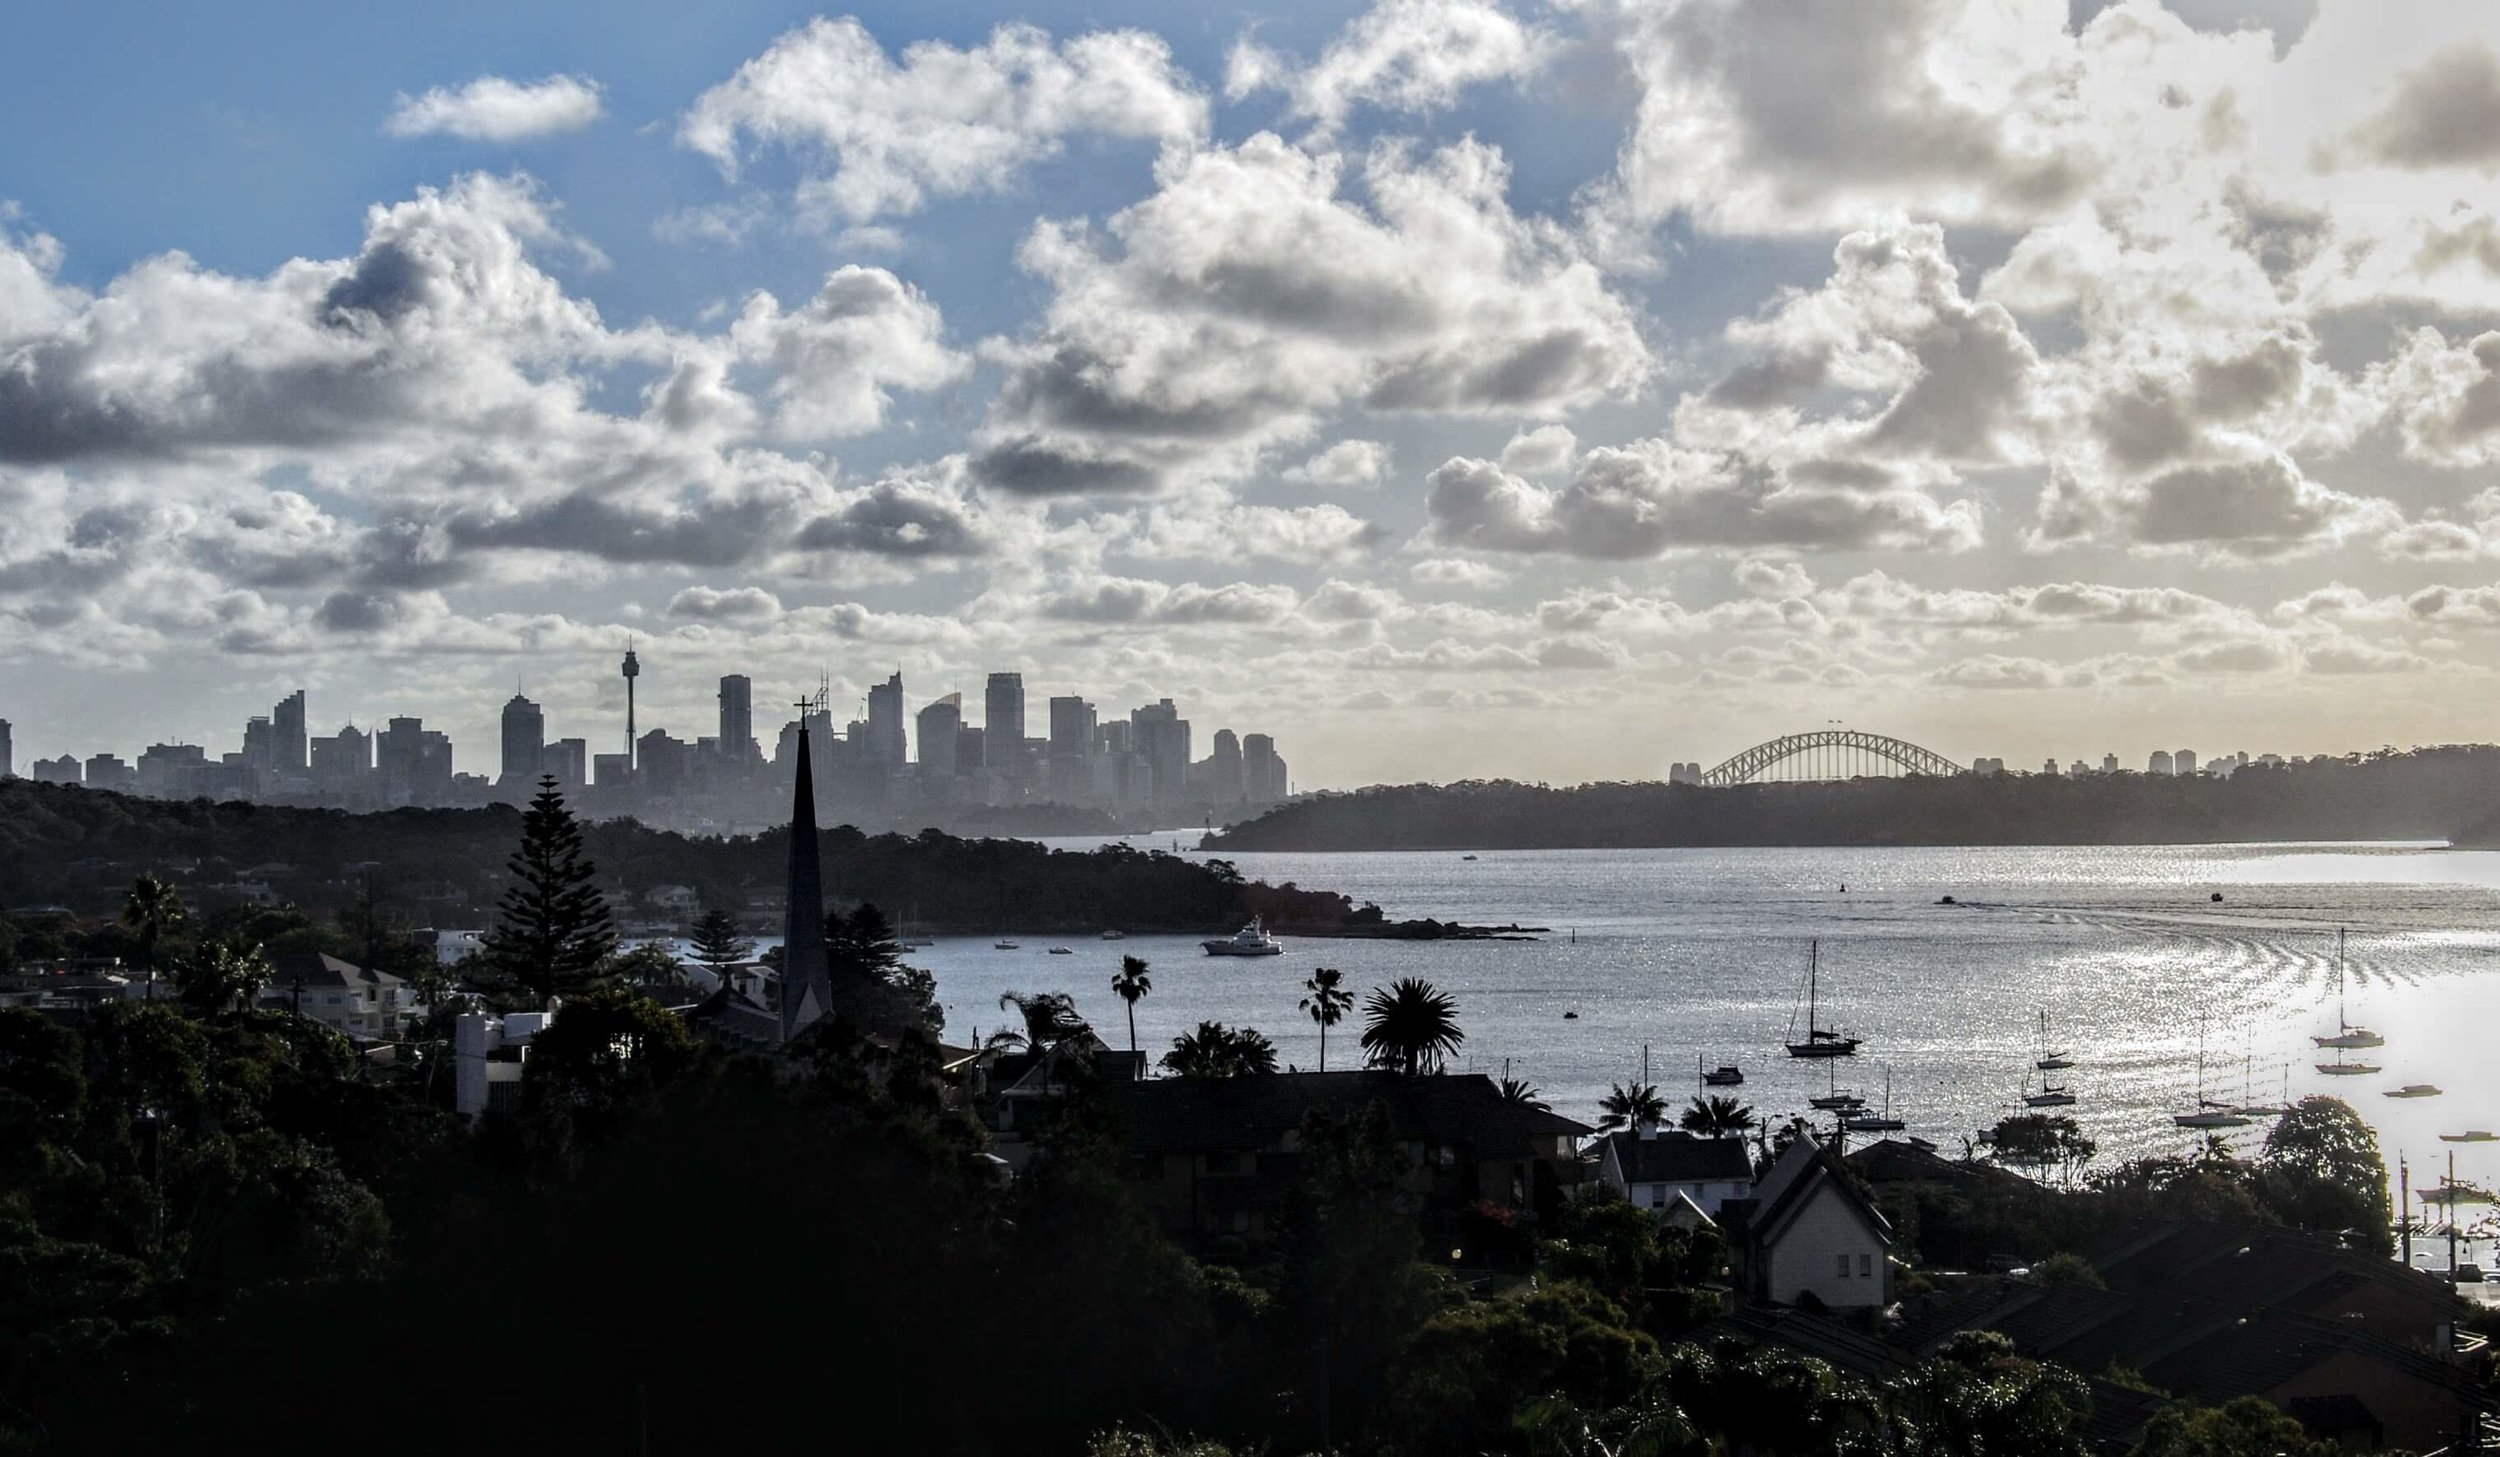 View from Gap Park overlooking Watsons Bay and Sydney Harbour